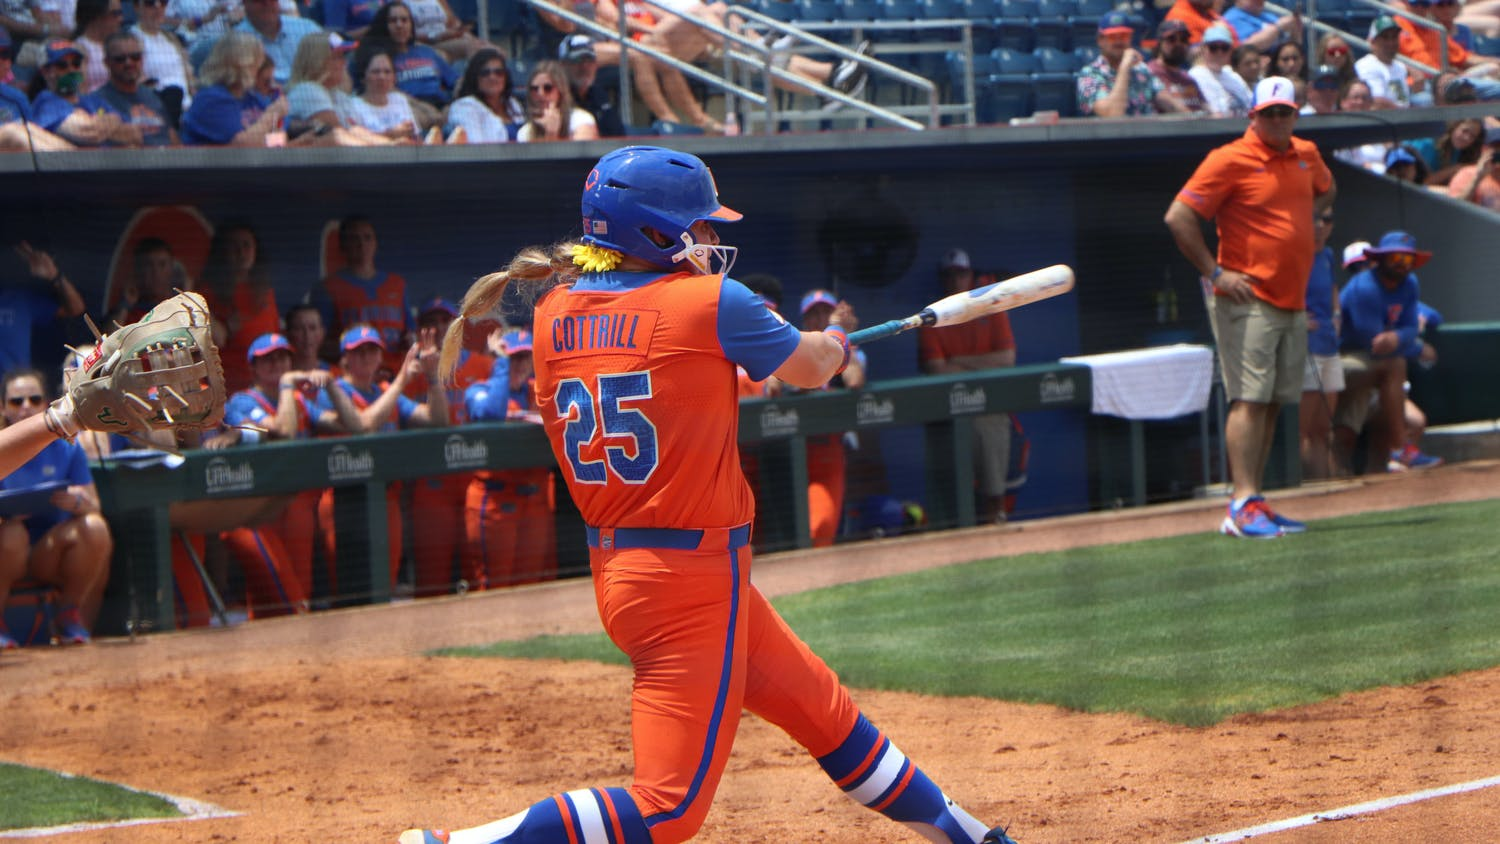 Julia Cottrill swings Friday against USF. Cottrill helped lead the Gators to an 8-0 win over the Bulls Sunday.